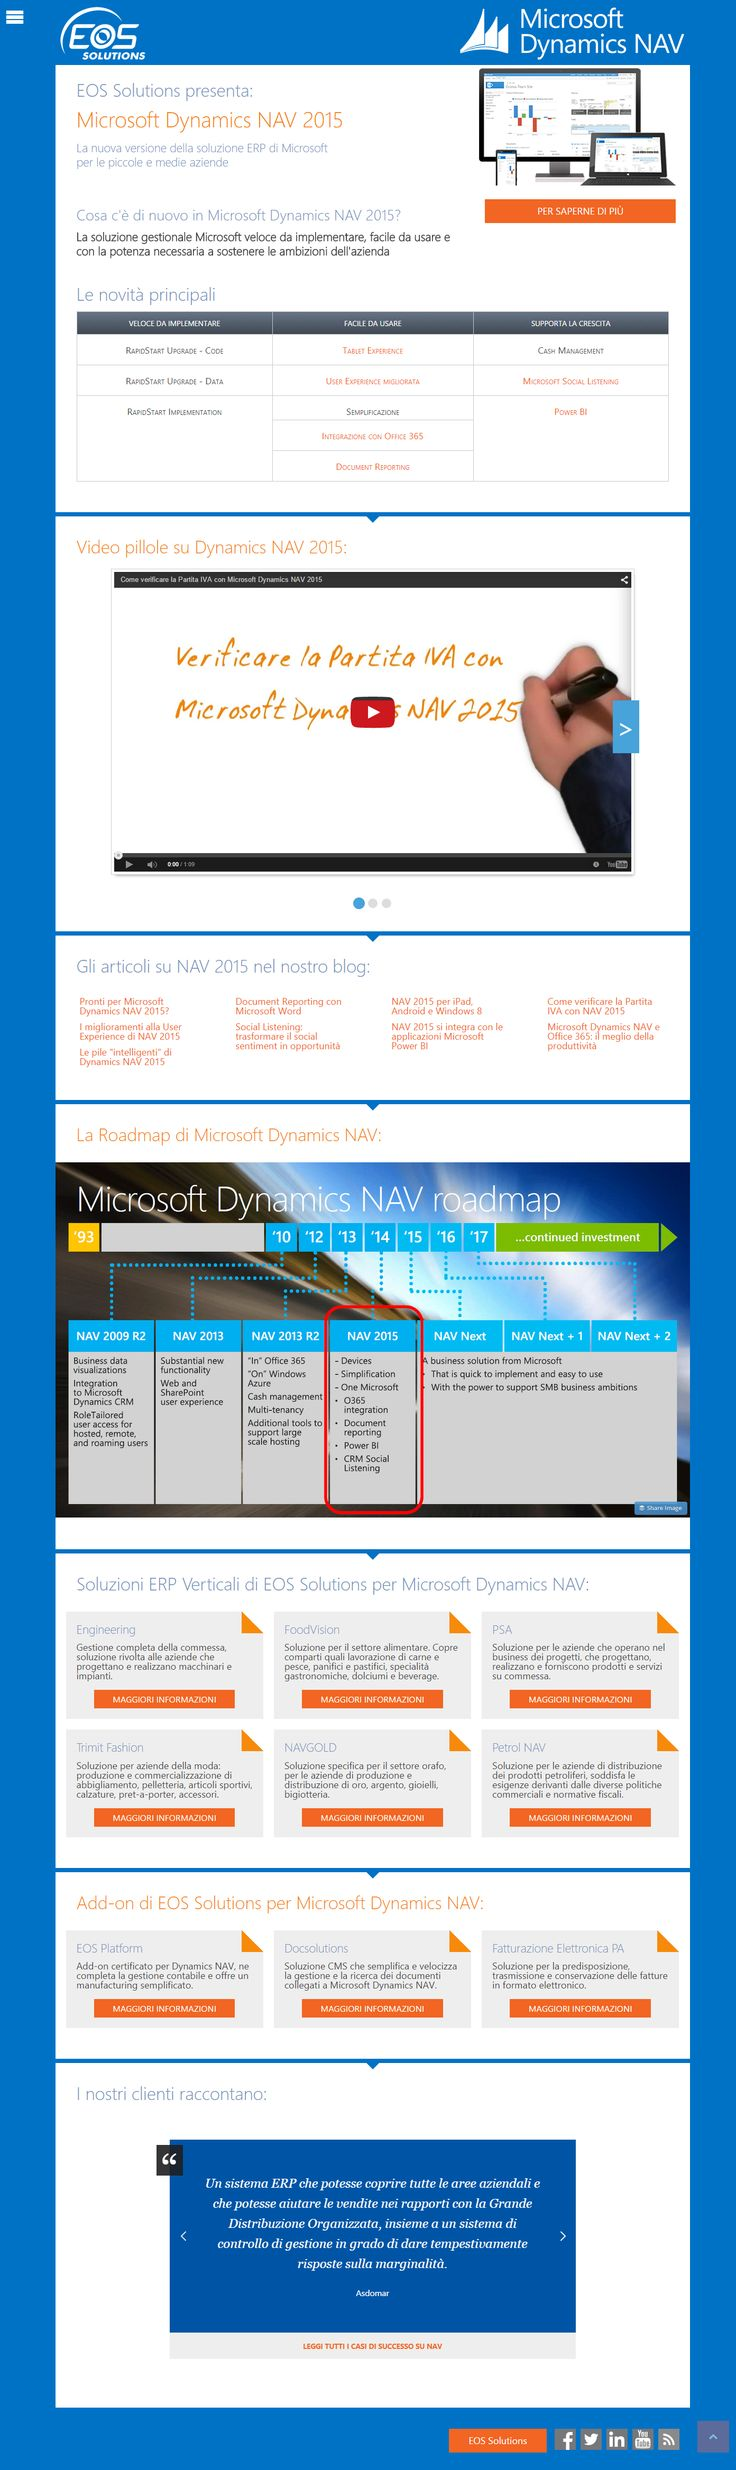 Landing Page Microsoft Dynamics NAV 2015 - web design, copywriting, front end development